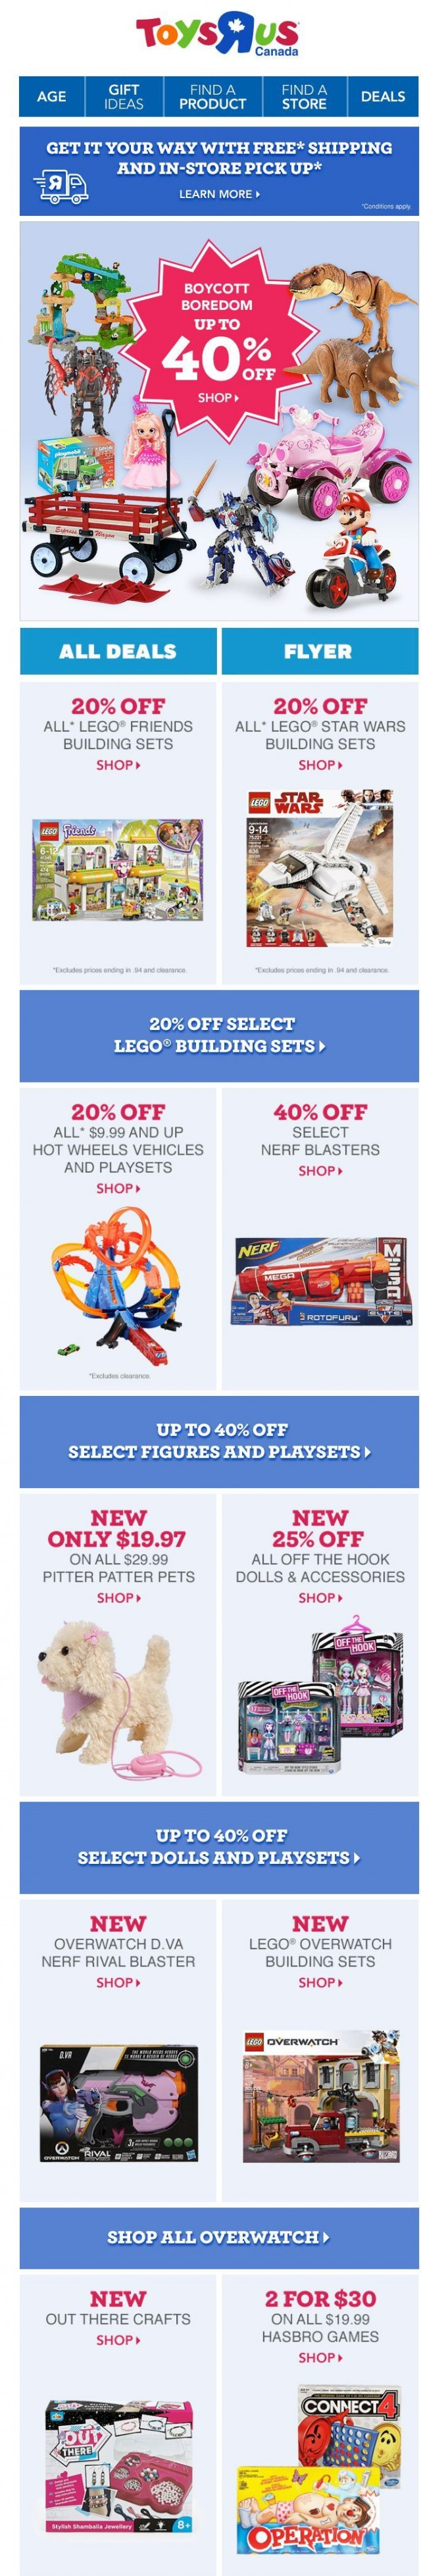 Coupon for: Toys R us - Stuff PLUS up to 40% off!